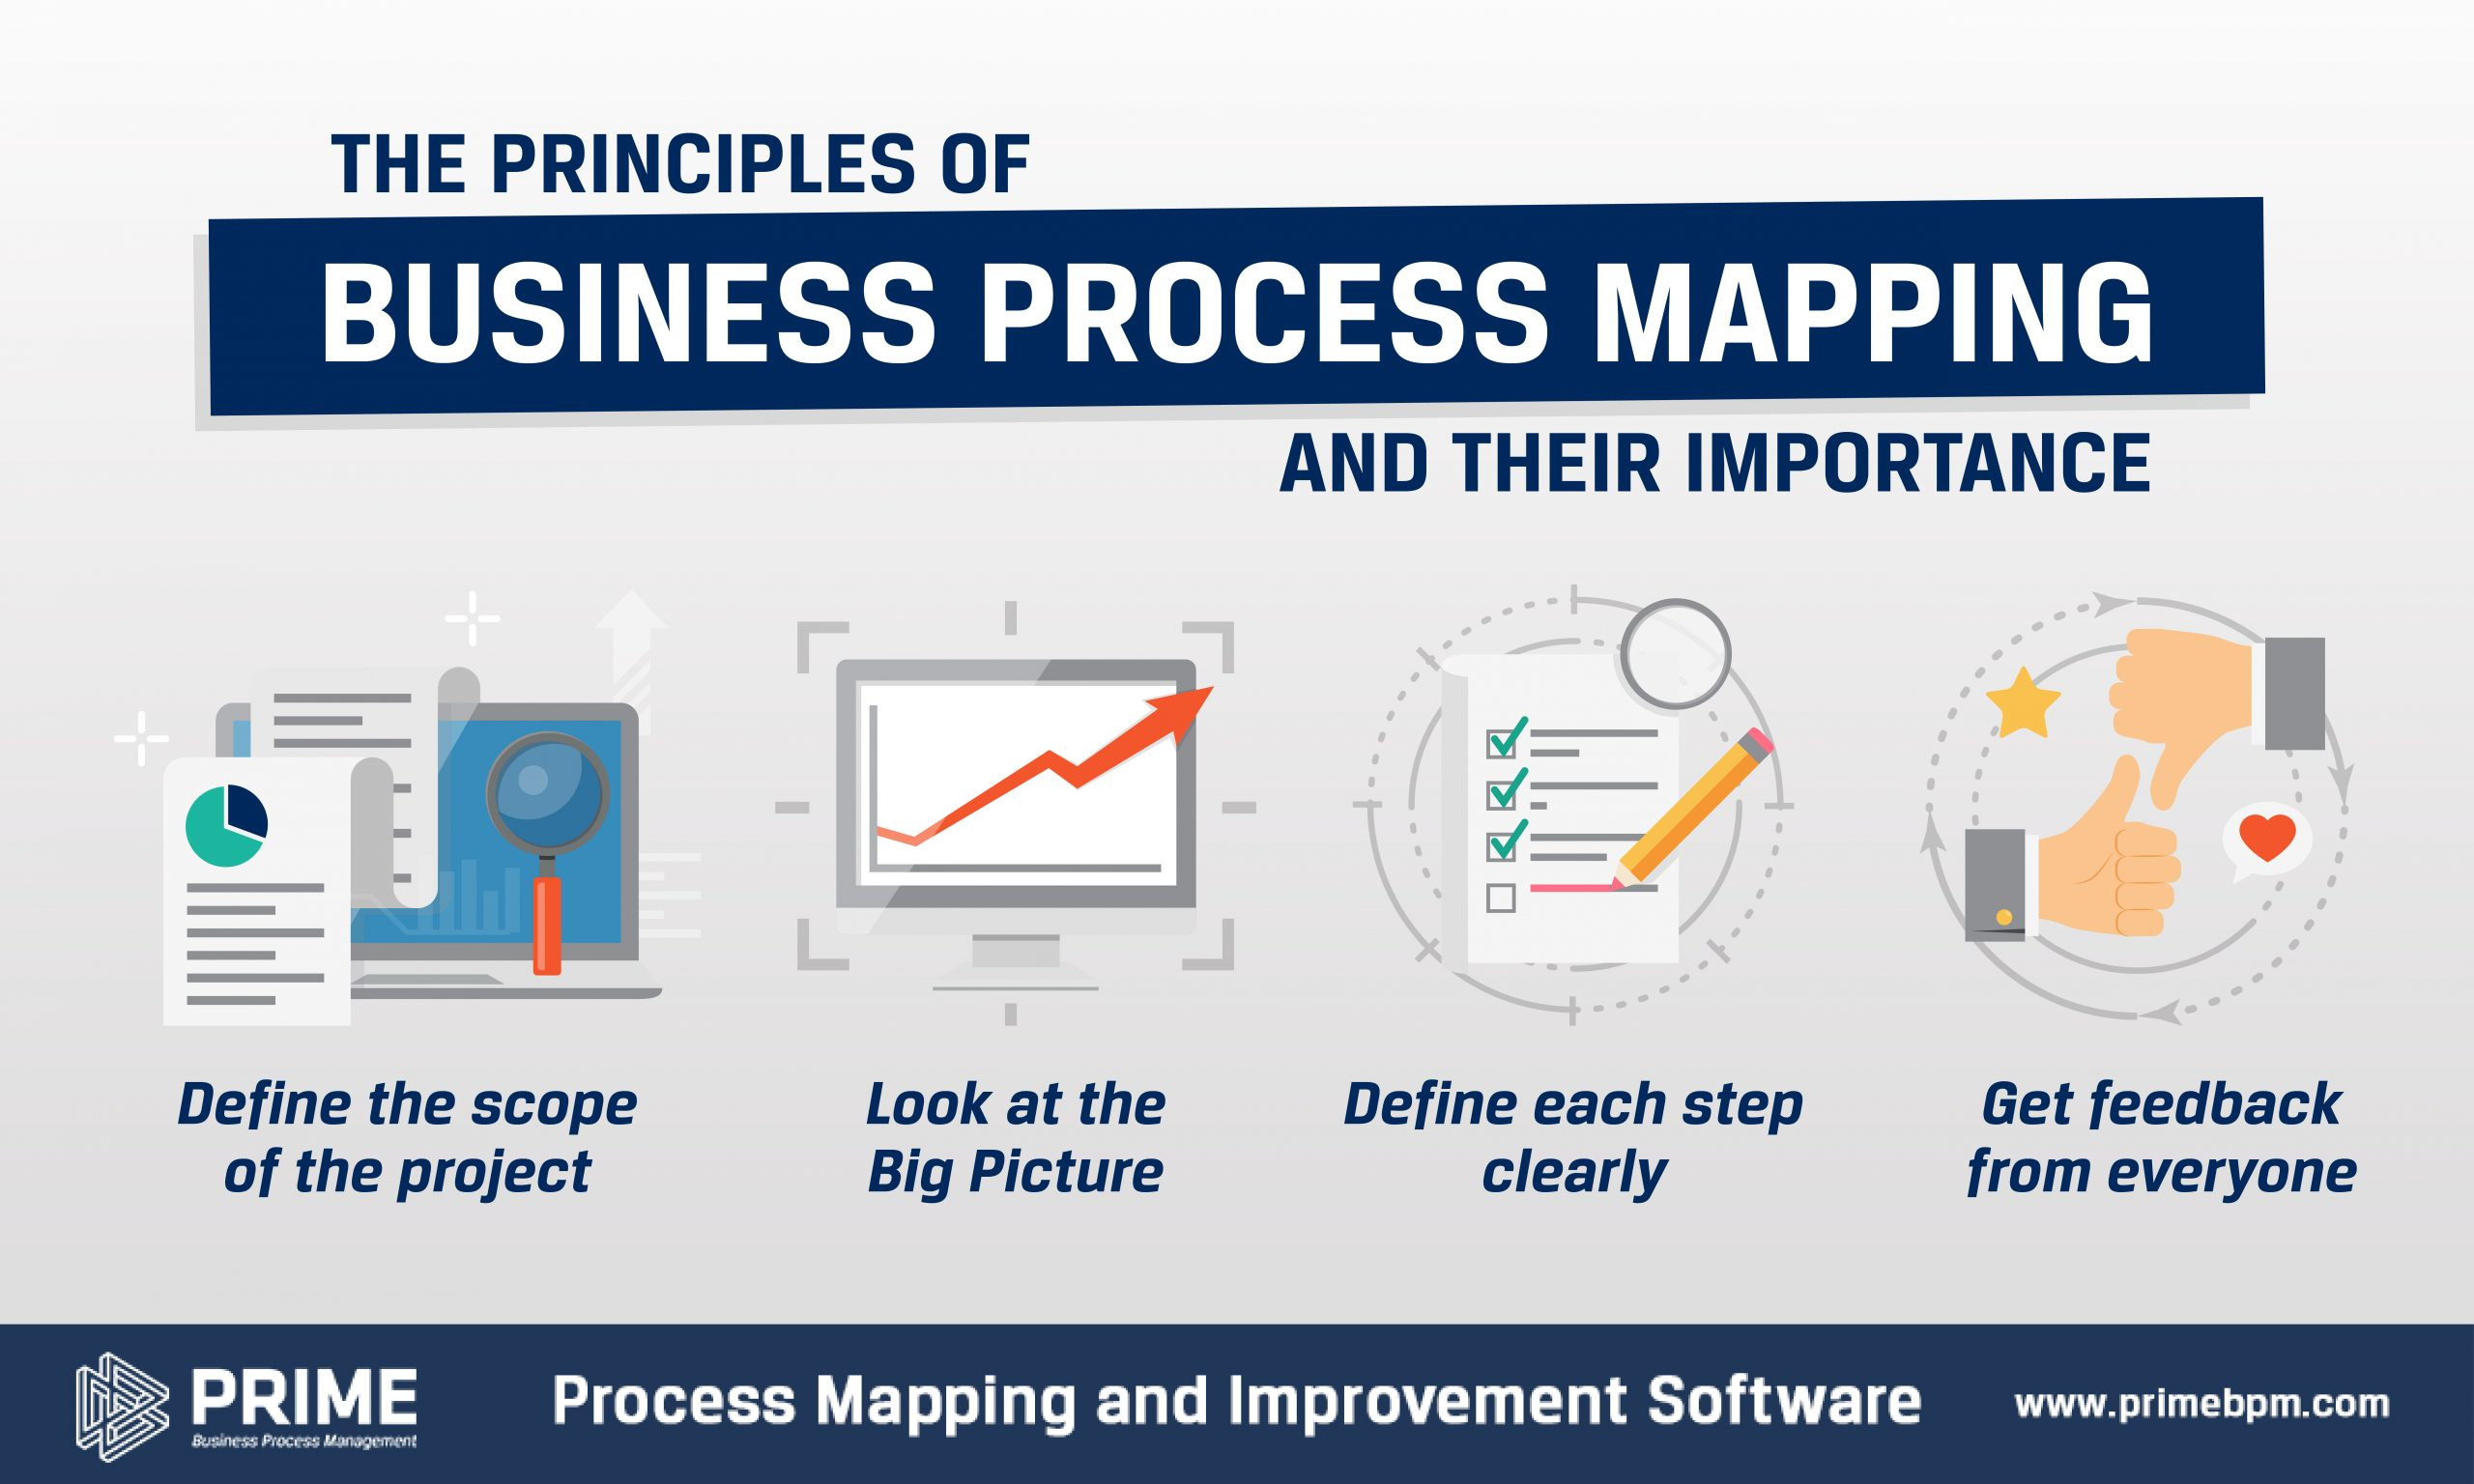 Principles of Business Process Mapping and their Importance